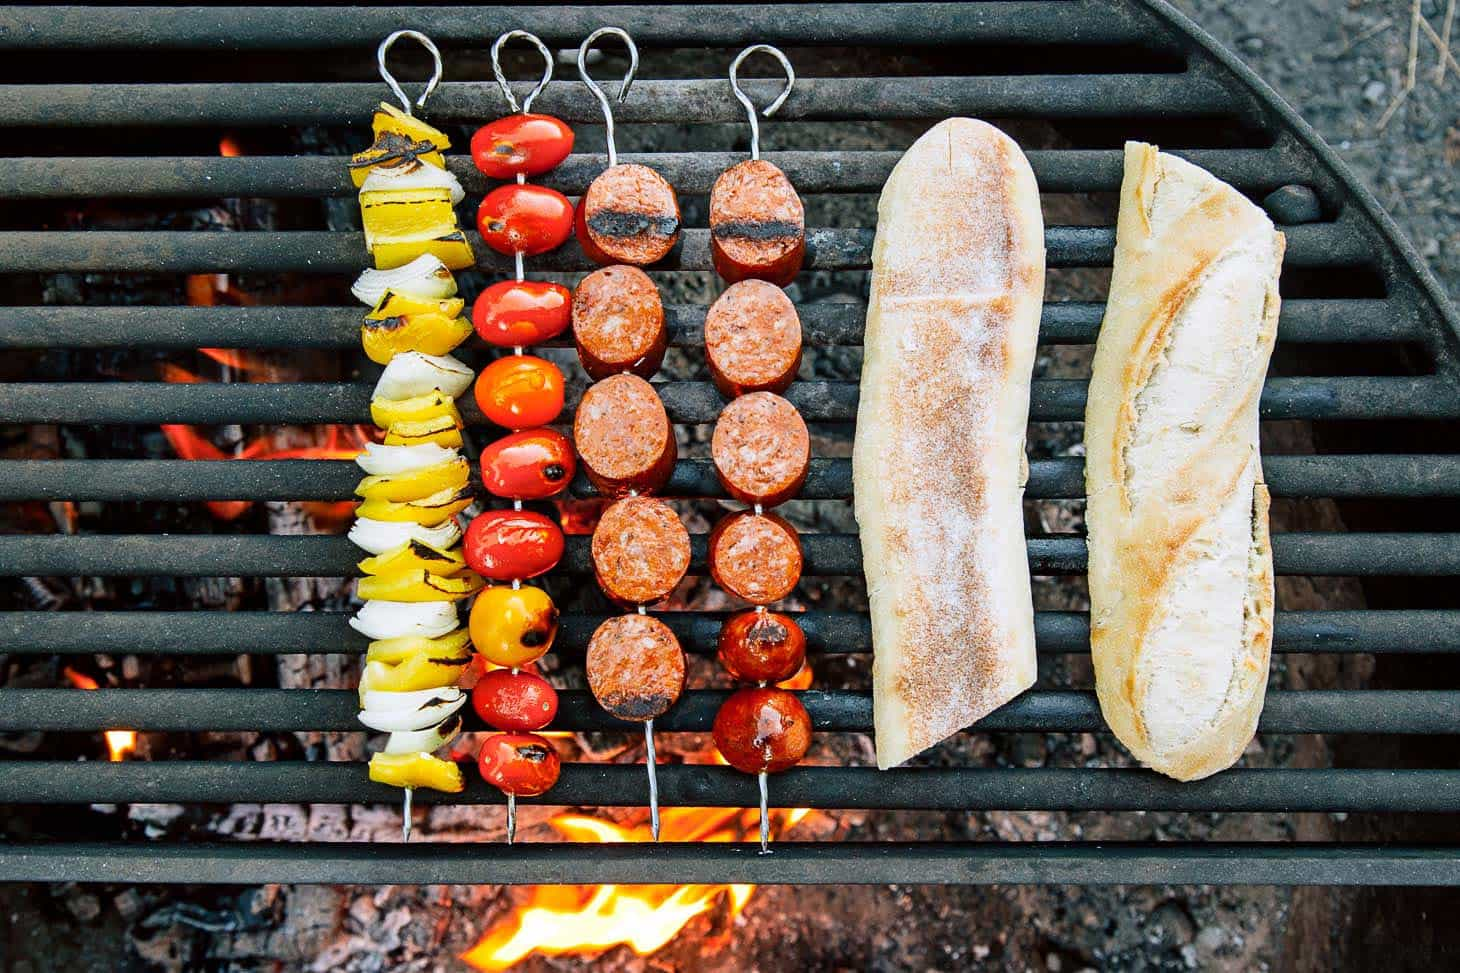 Grilling chorizo kebabs on the campfire